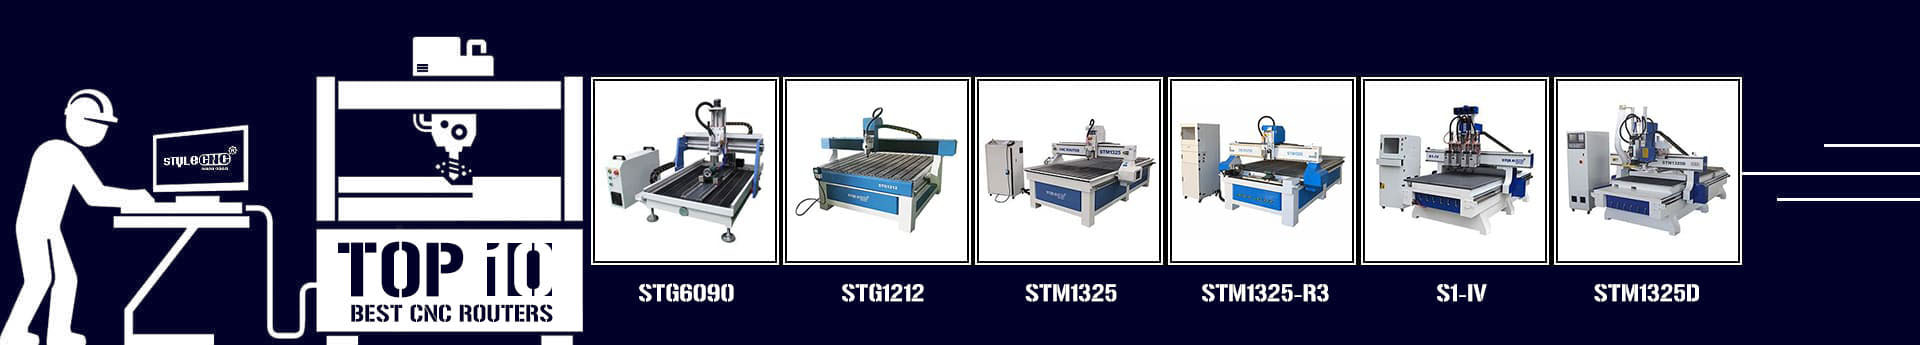 Affordable CNC Routers | CNC Router Machines | CNC Router